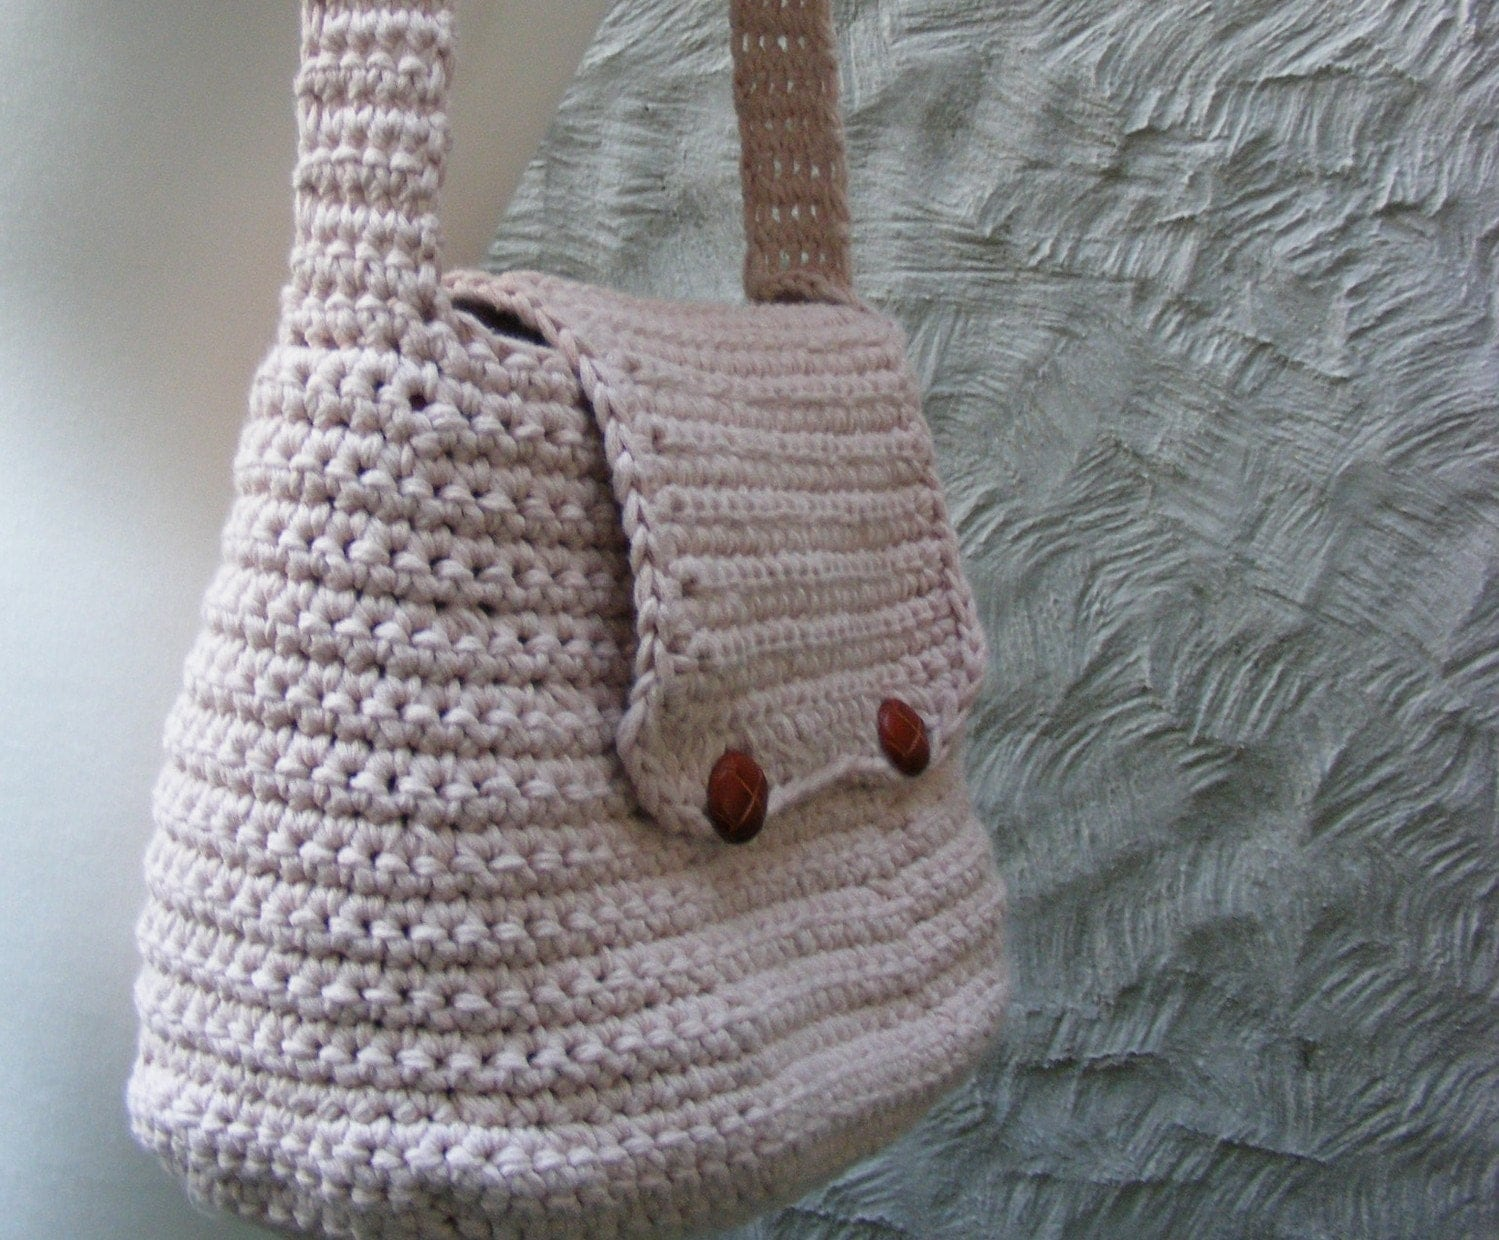 Easy Crochet Purse Patterns For Beginners : Crochet Patterns For Beginners Bag Patterns Crochet Hobo Bag